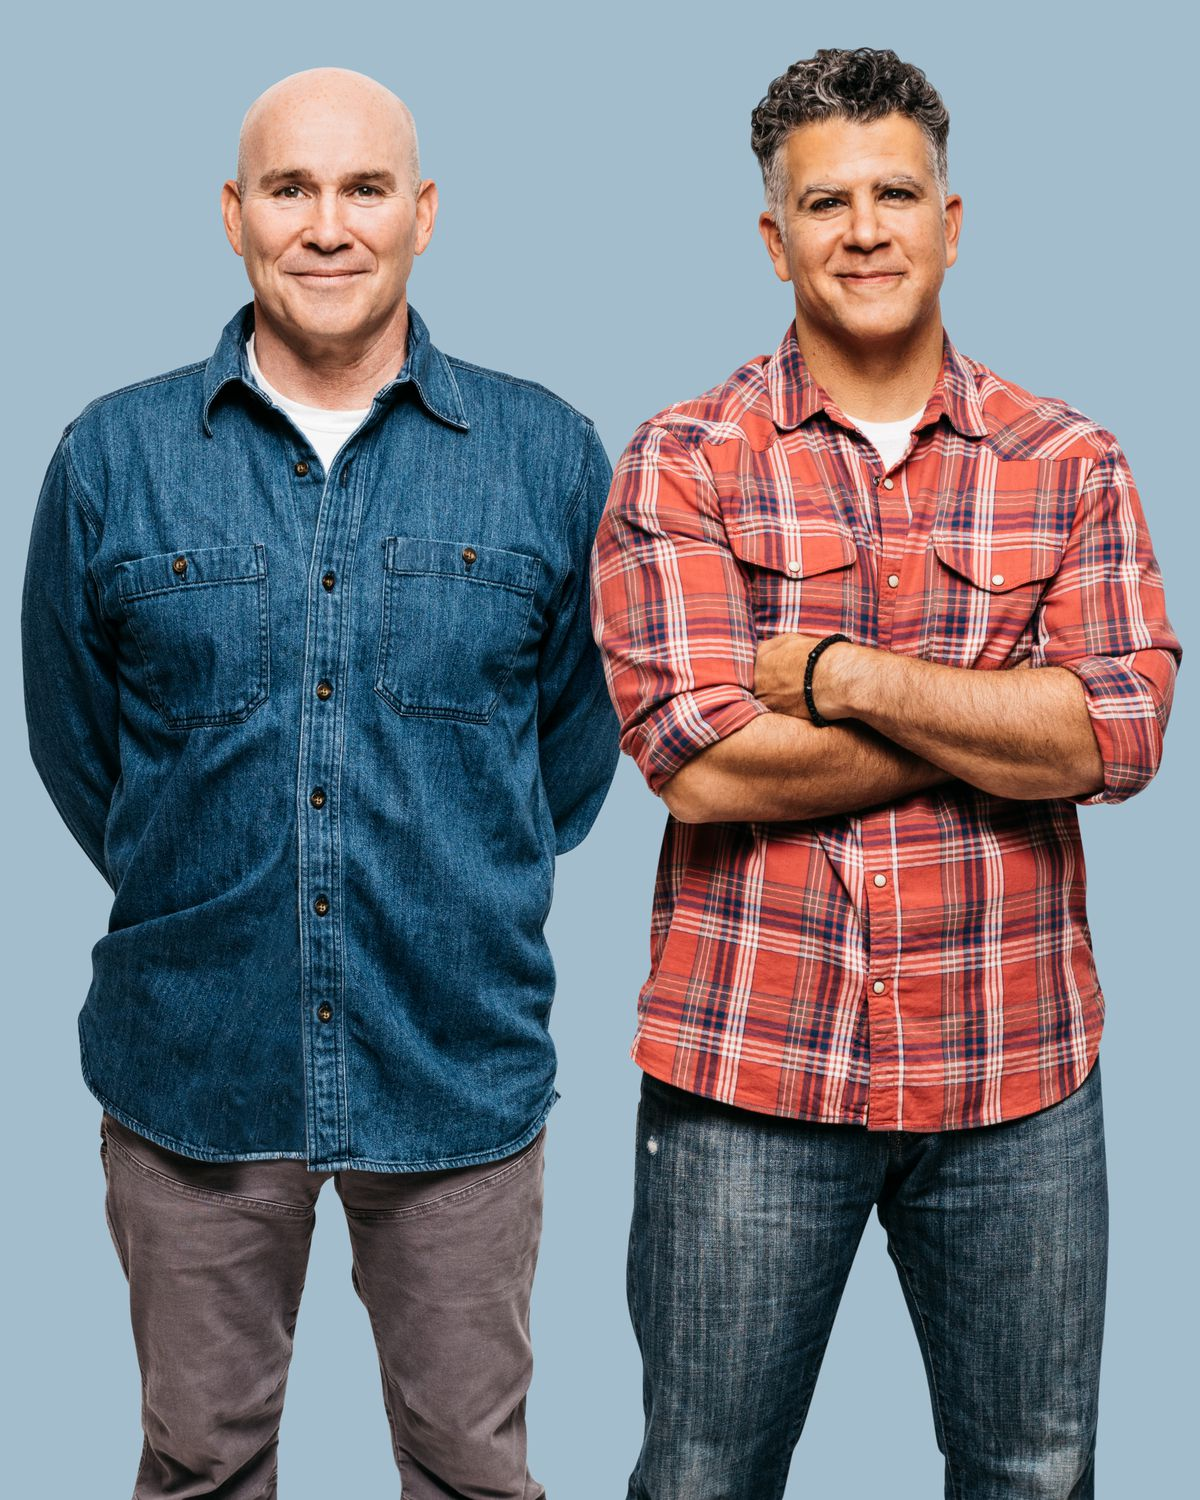 Spring 2021, How to Renovate Right, Mark McCullough and Chris Ermides